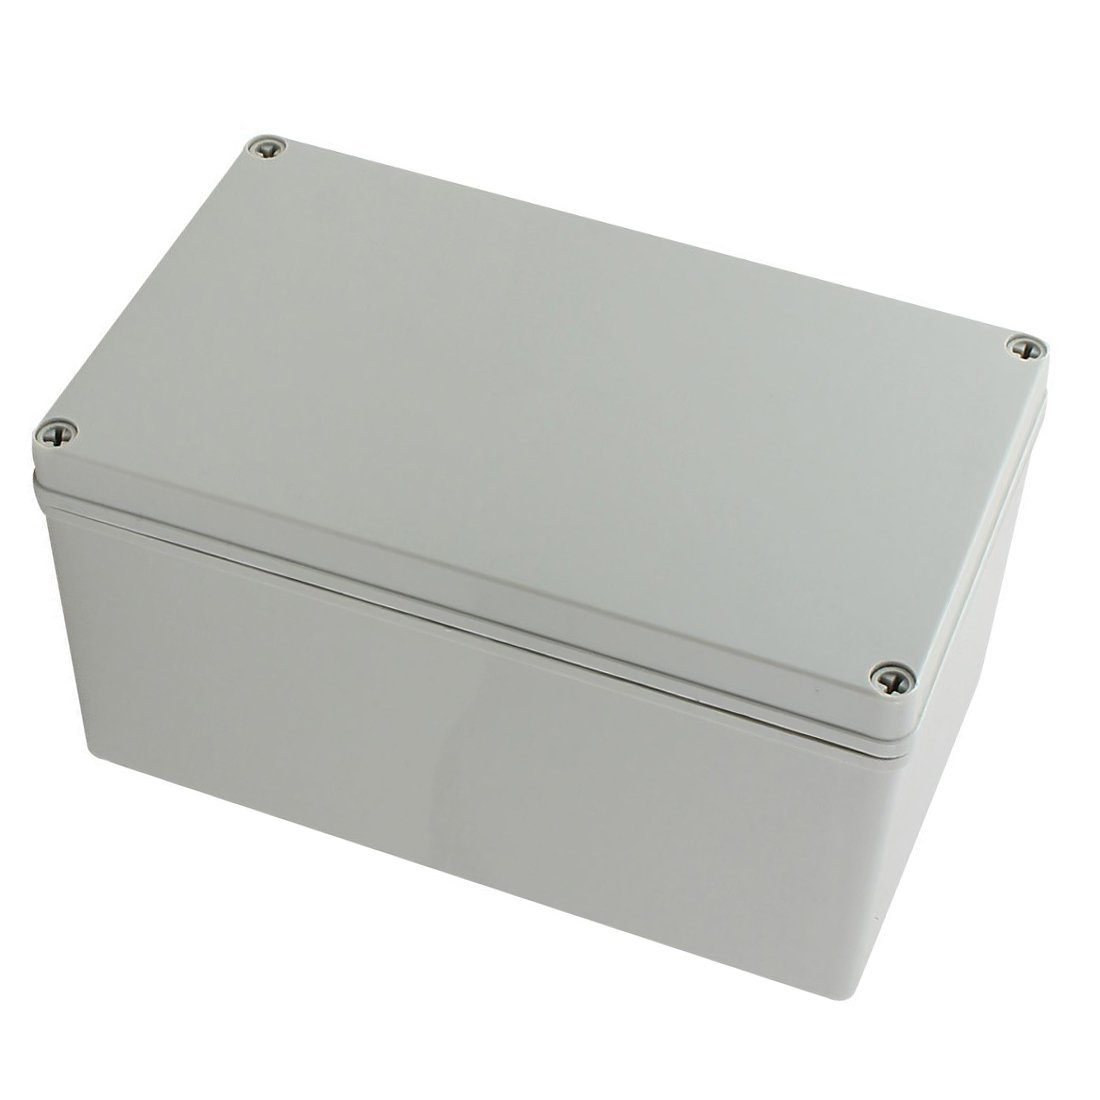 YXQ 9.8'' x 5.9'' x 5.1'' Junction Box Electrical Project Case IP65 Waterproof ABS DIY Power Outdoor Enclosure Gray (250 x 150 x 130mm)